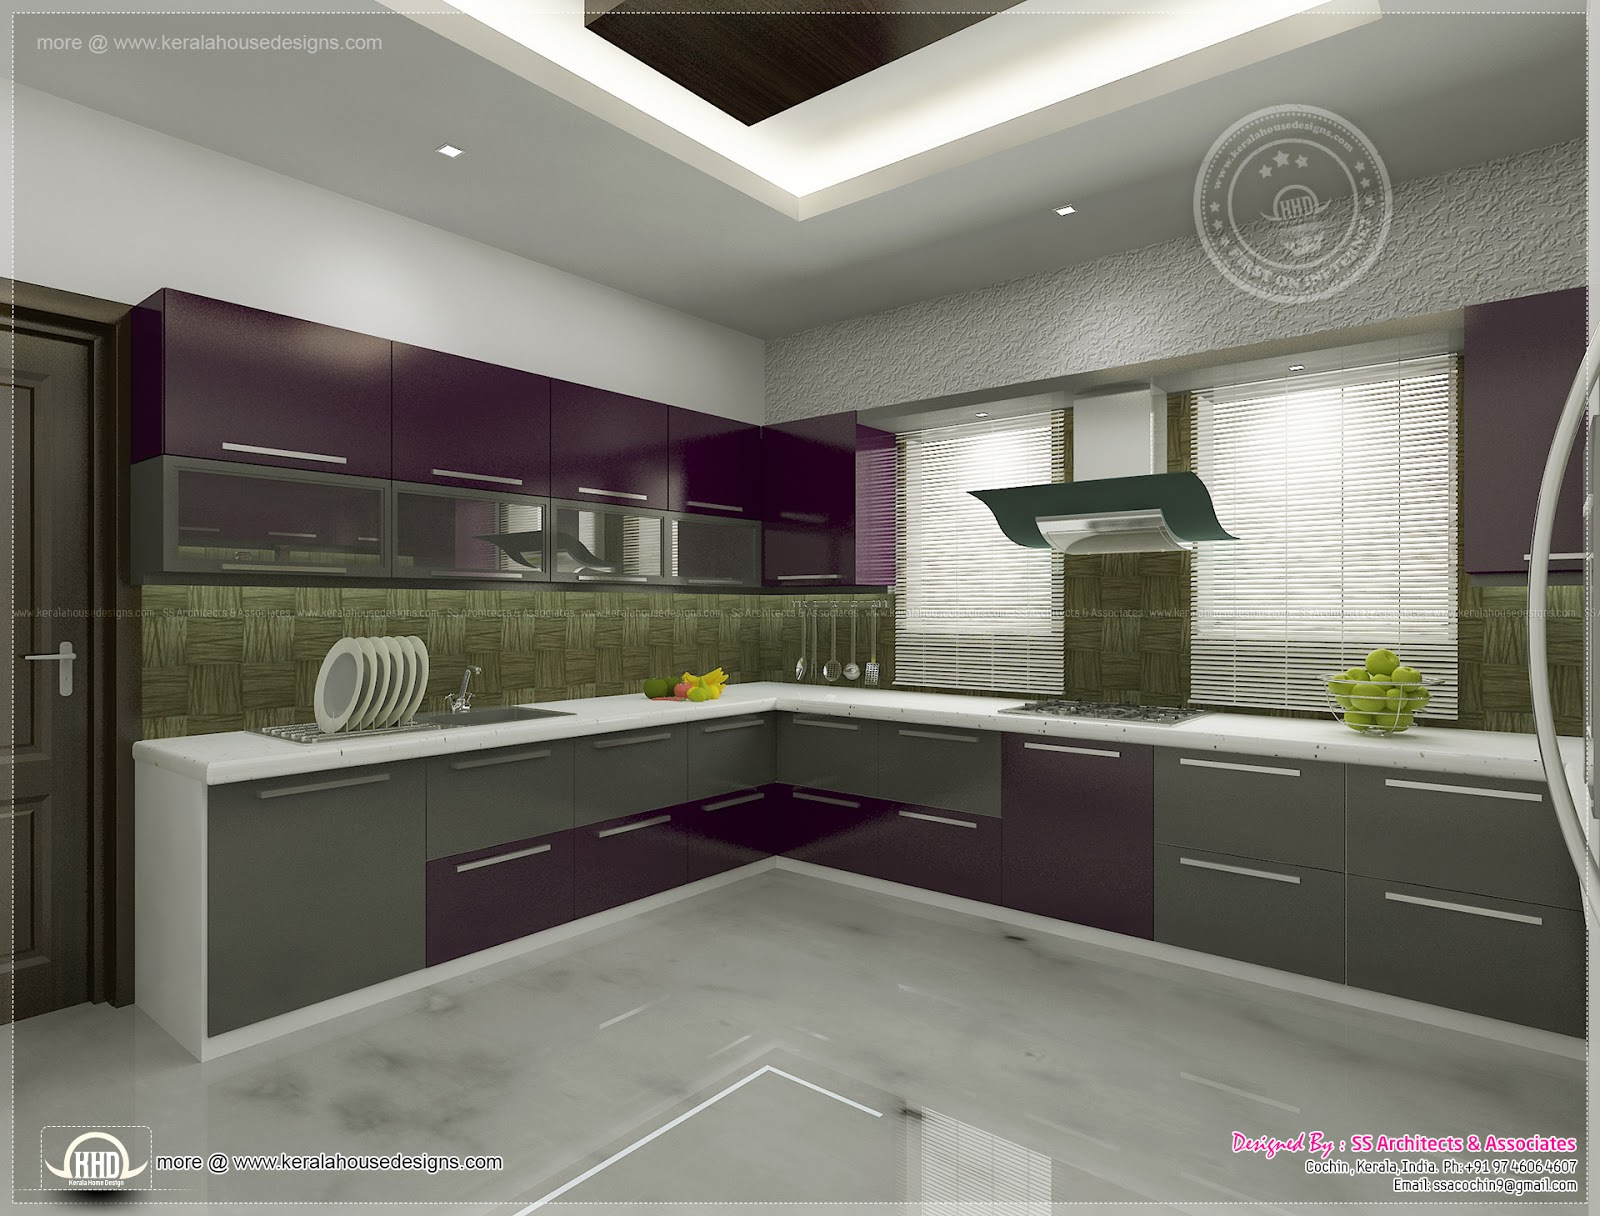 Kitchen interior views by ss architects cochin home for 1 room kitchen interior design